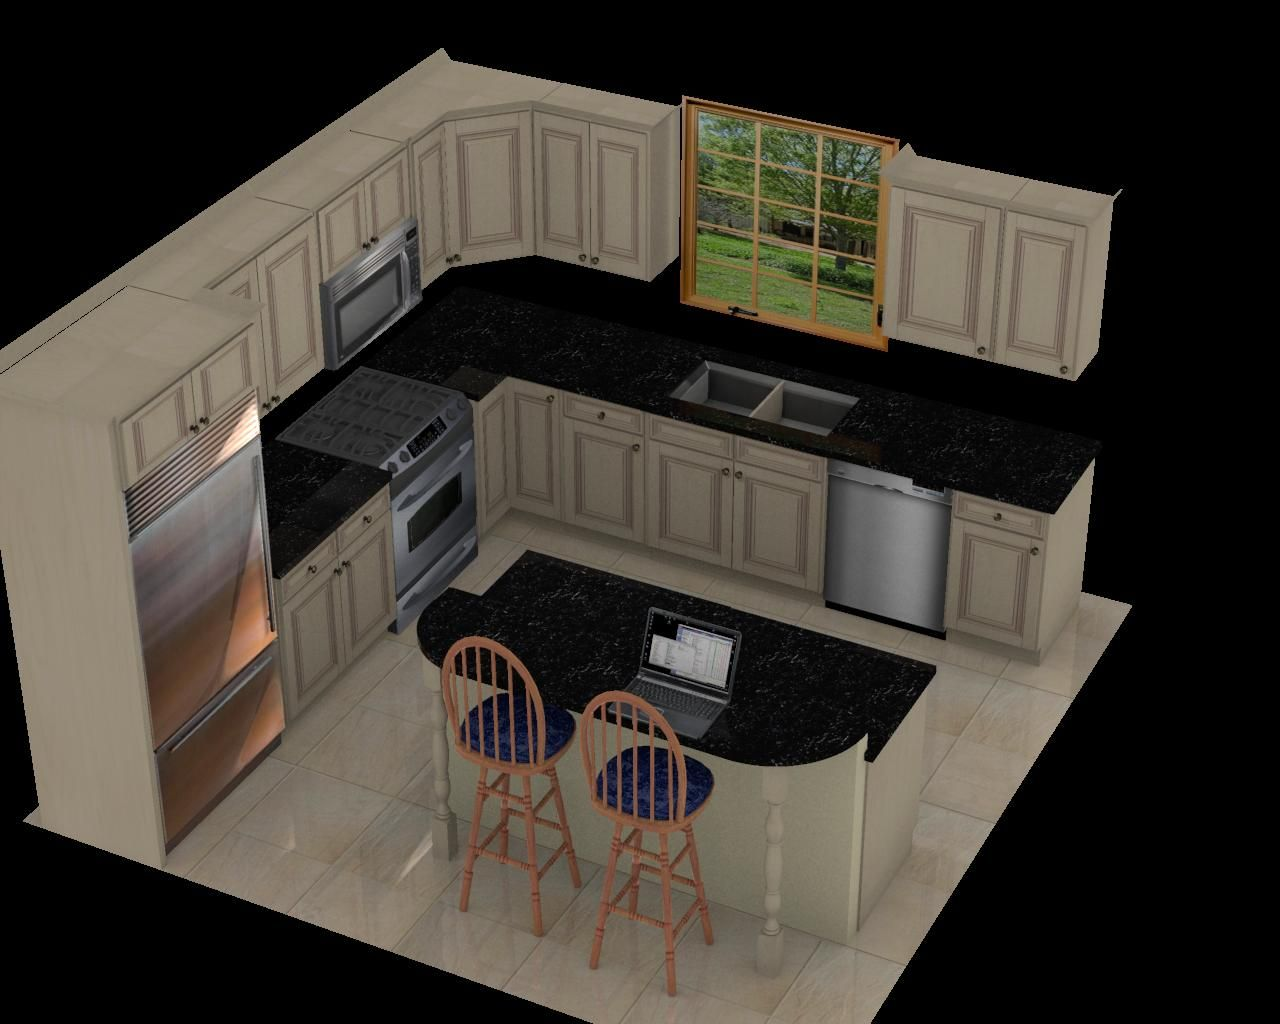 Luxury 12x12 kitchen layout with island 51 for with 12x12 for Kitchen ideas no island